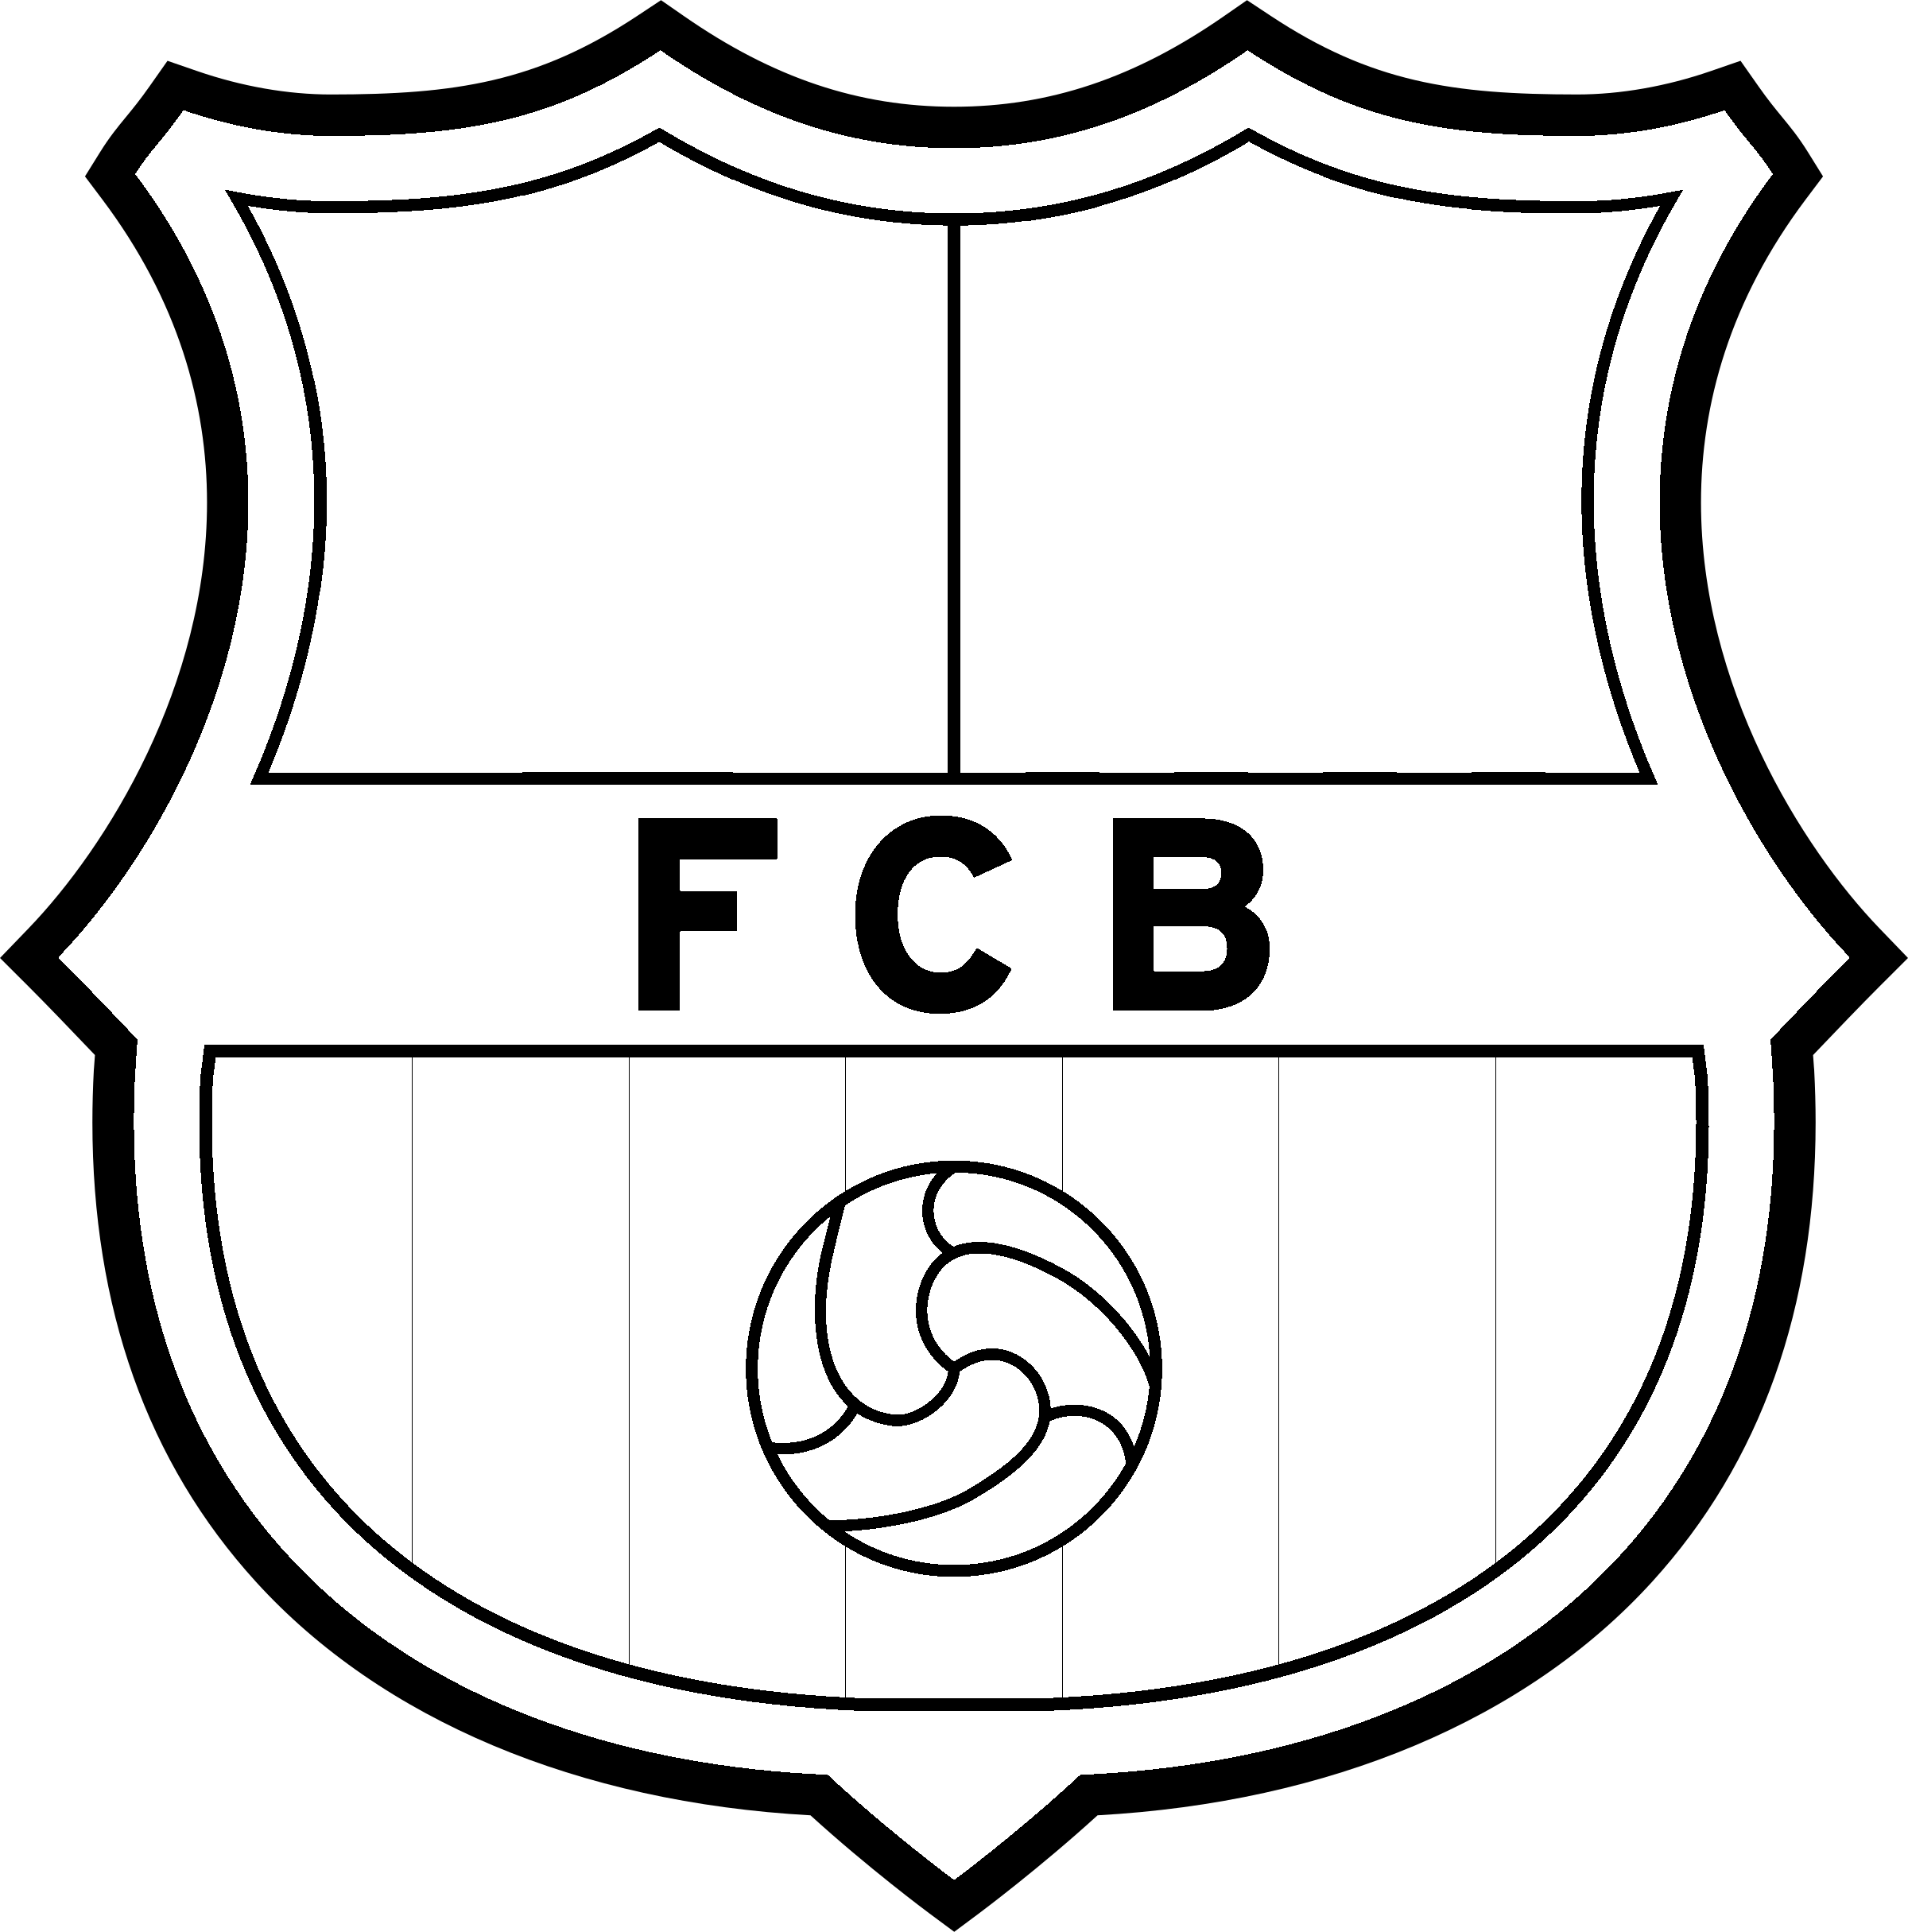 Fc Barcelona Logo Png Transparent Svg Vector Freebie Supply